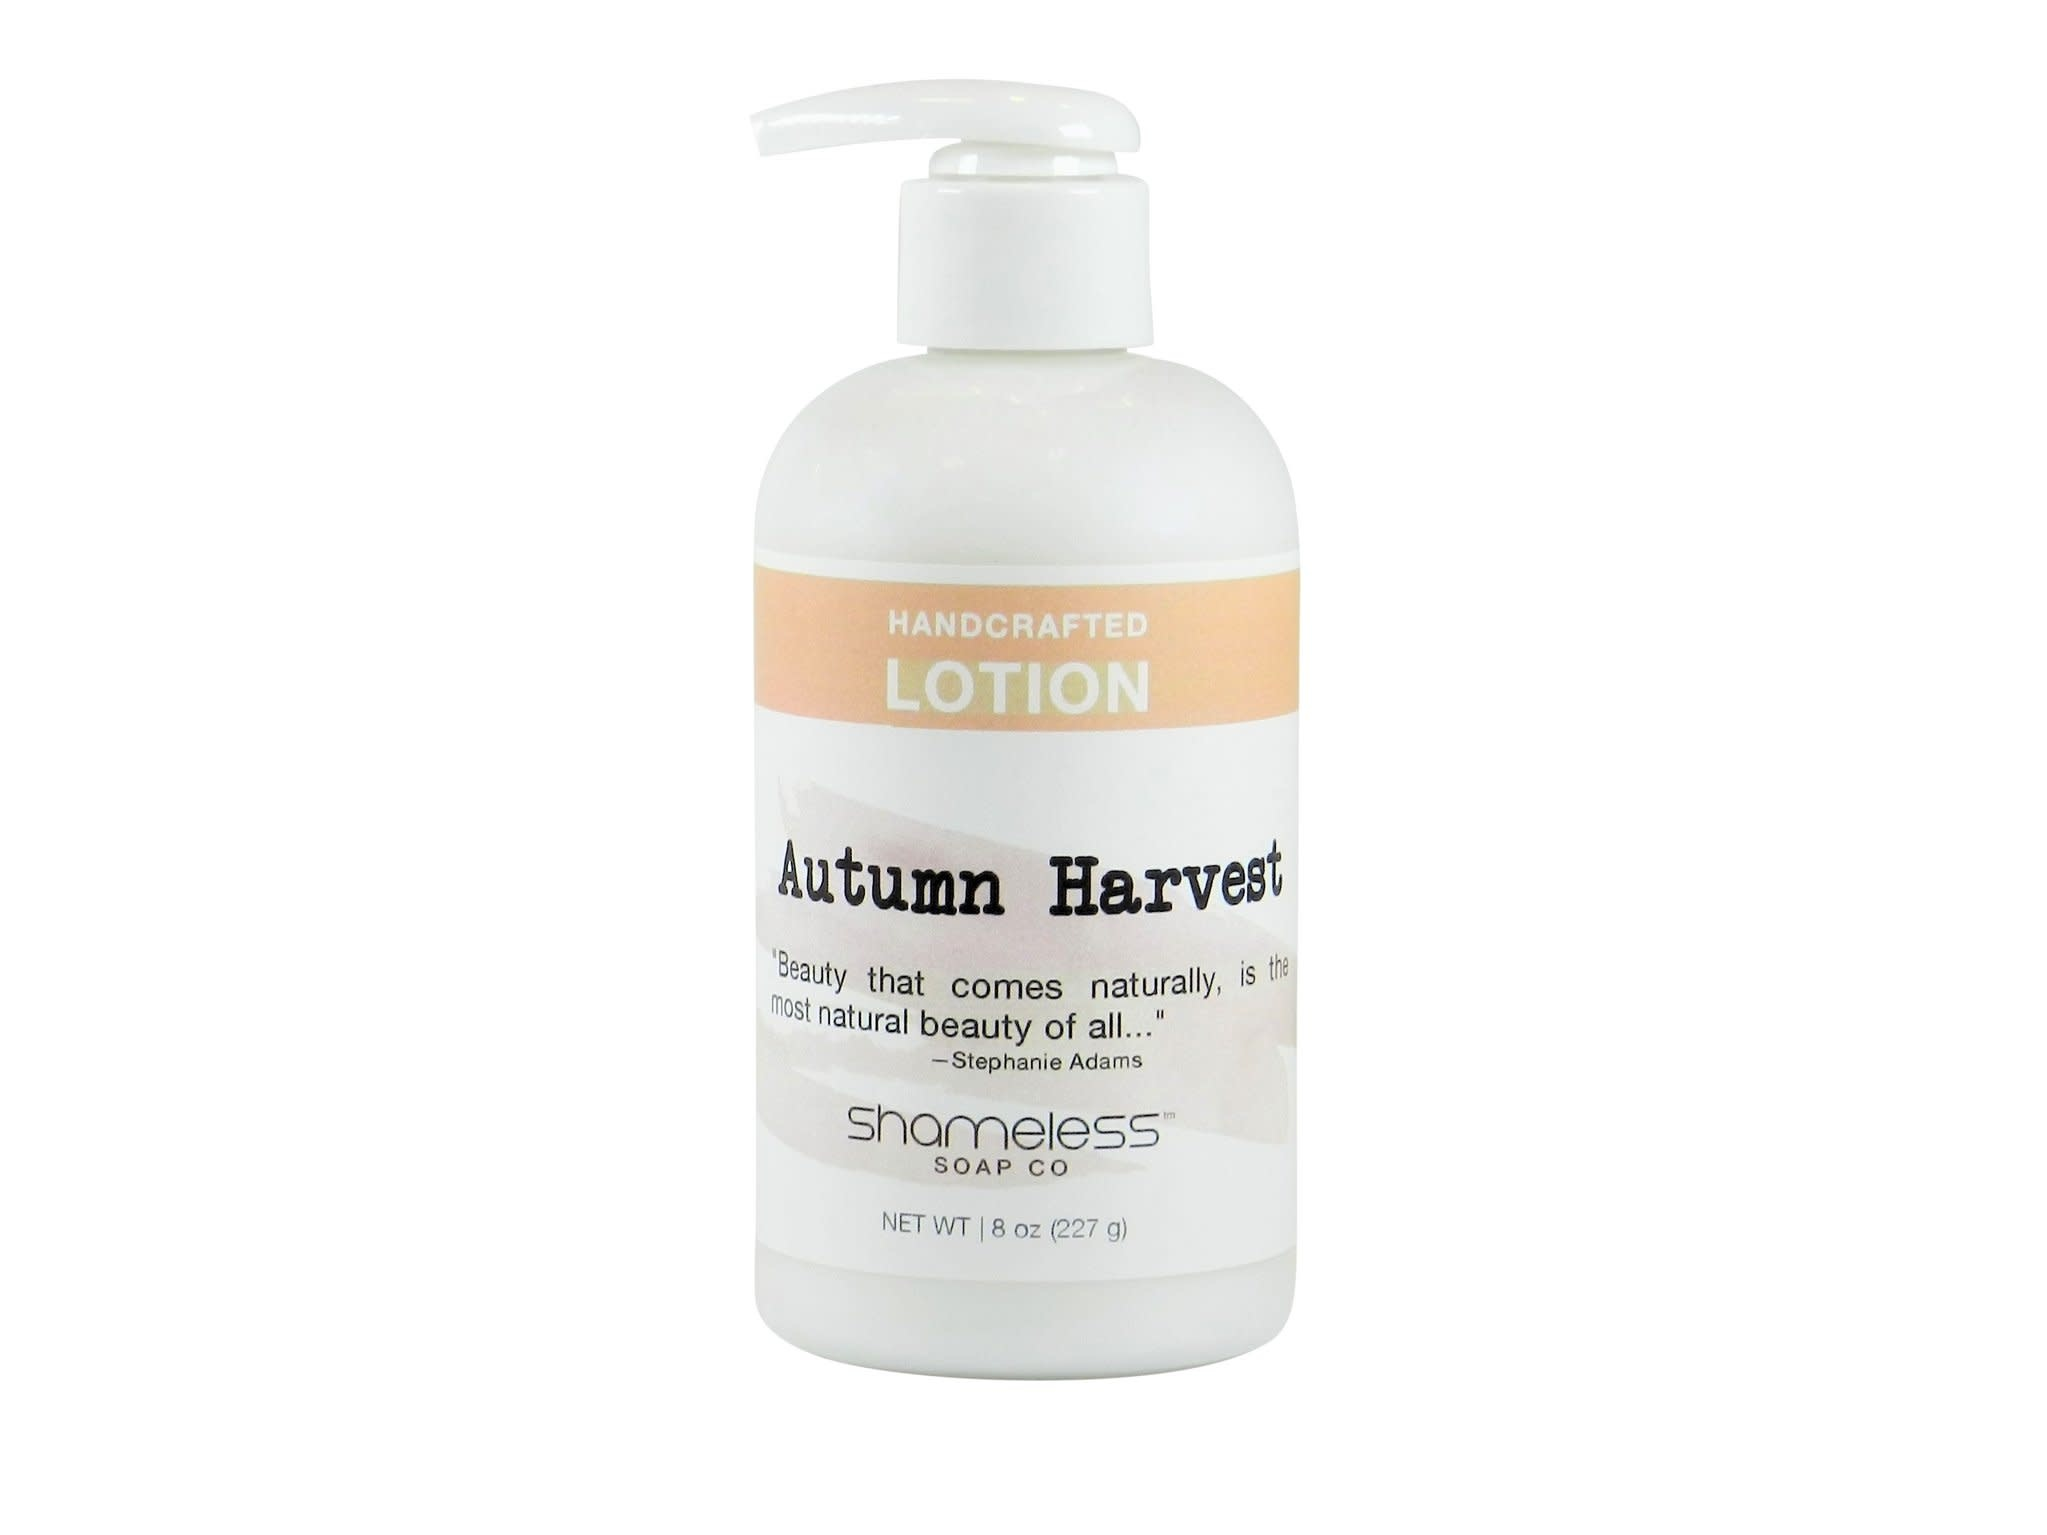 Shameless Soap Co Autumn Harvest Lotion